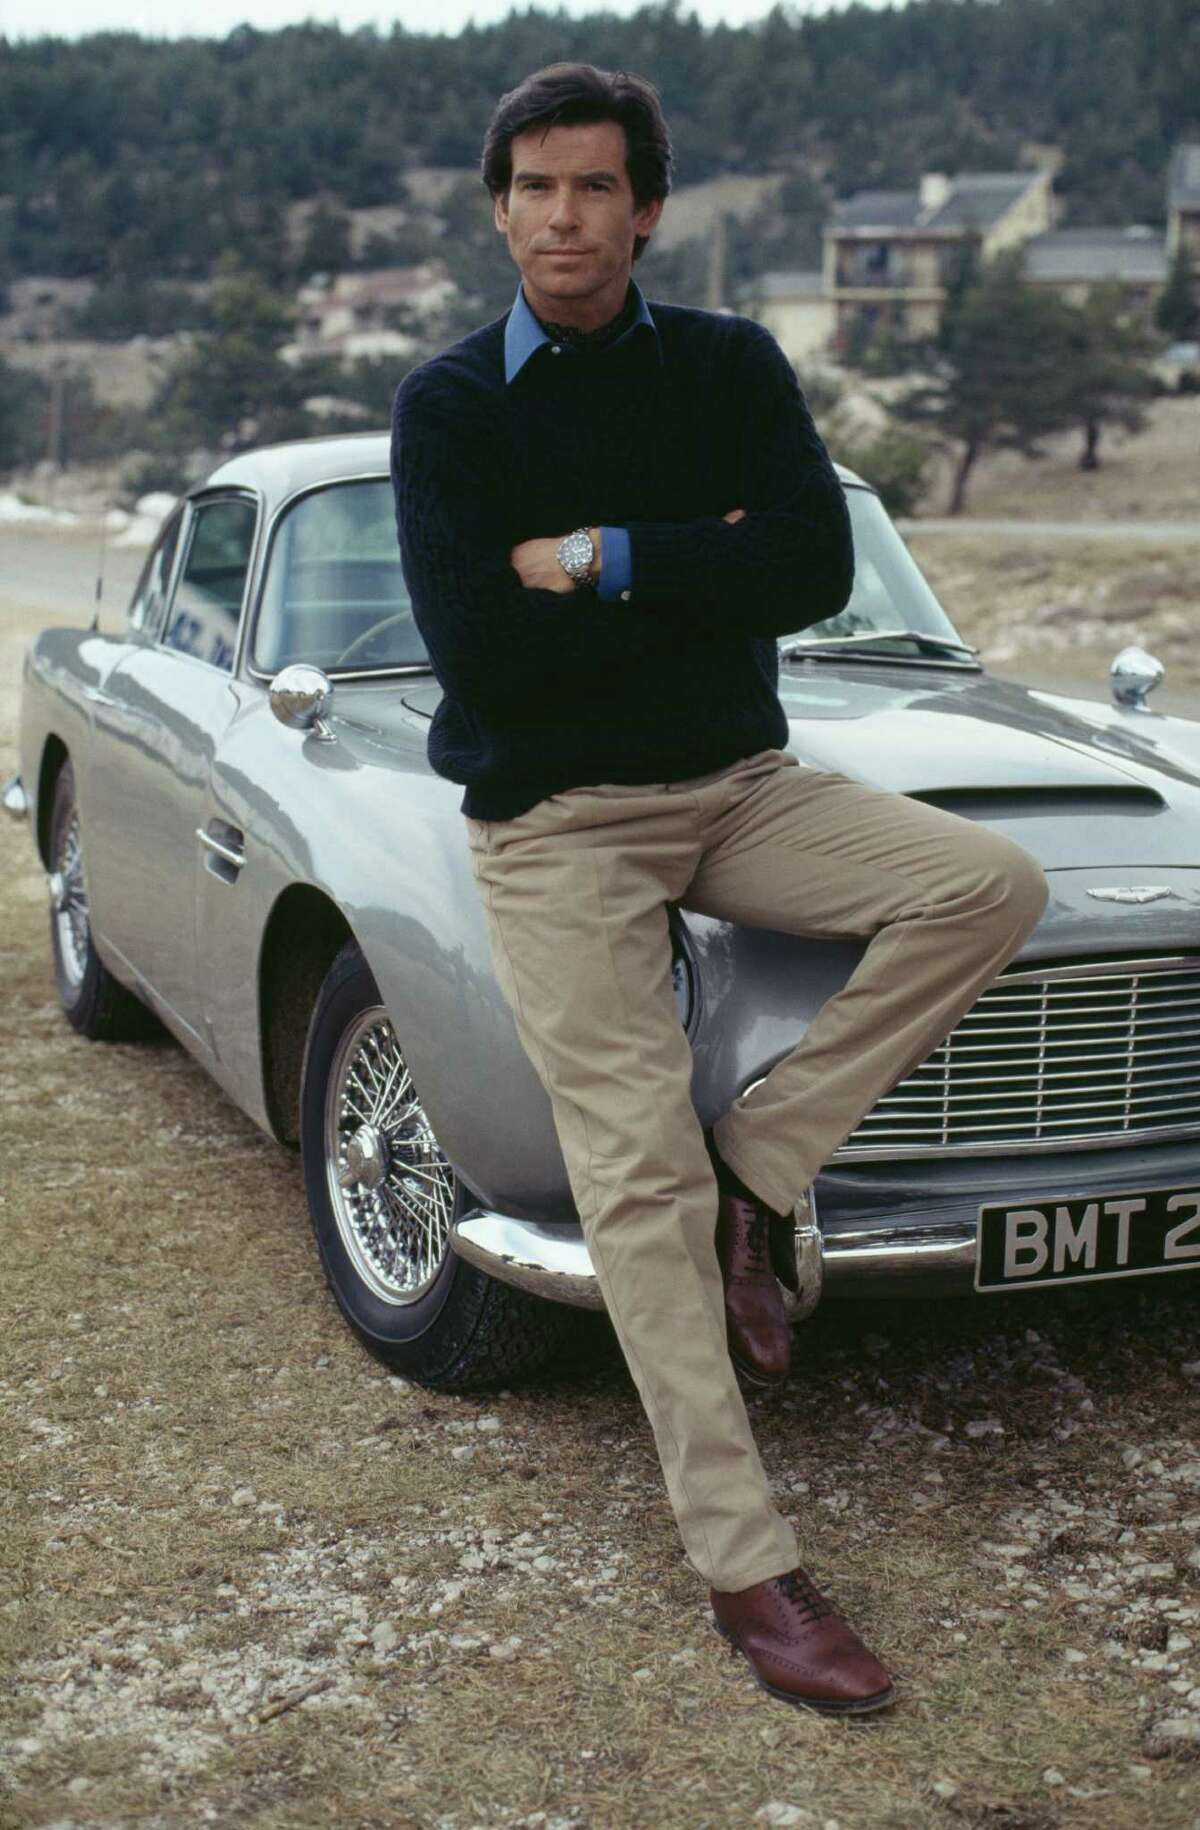 Irish actor Pierce Brosnan poses against an Aston Martin DB5 in a publicity still for the James Bond film 'GoldenEye', 1995.